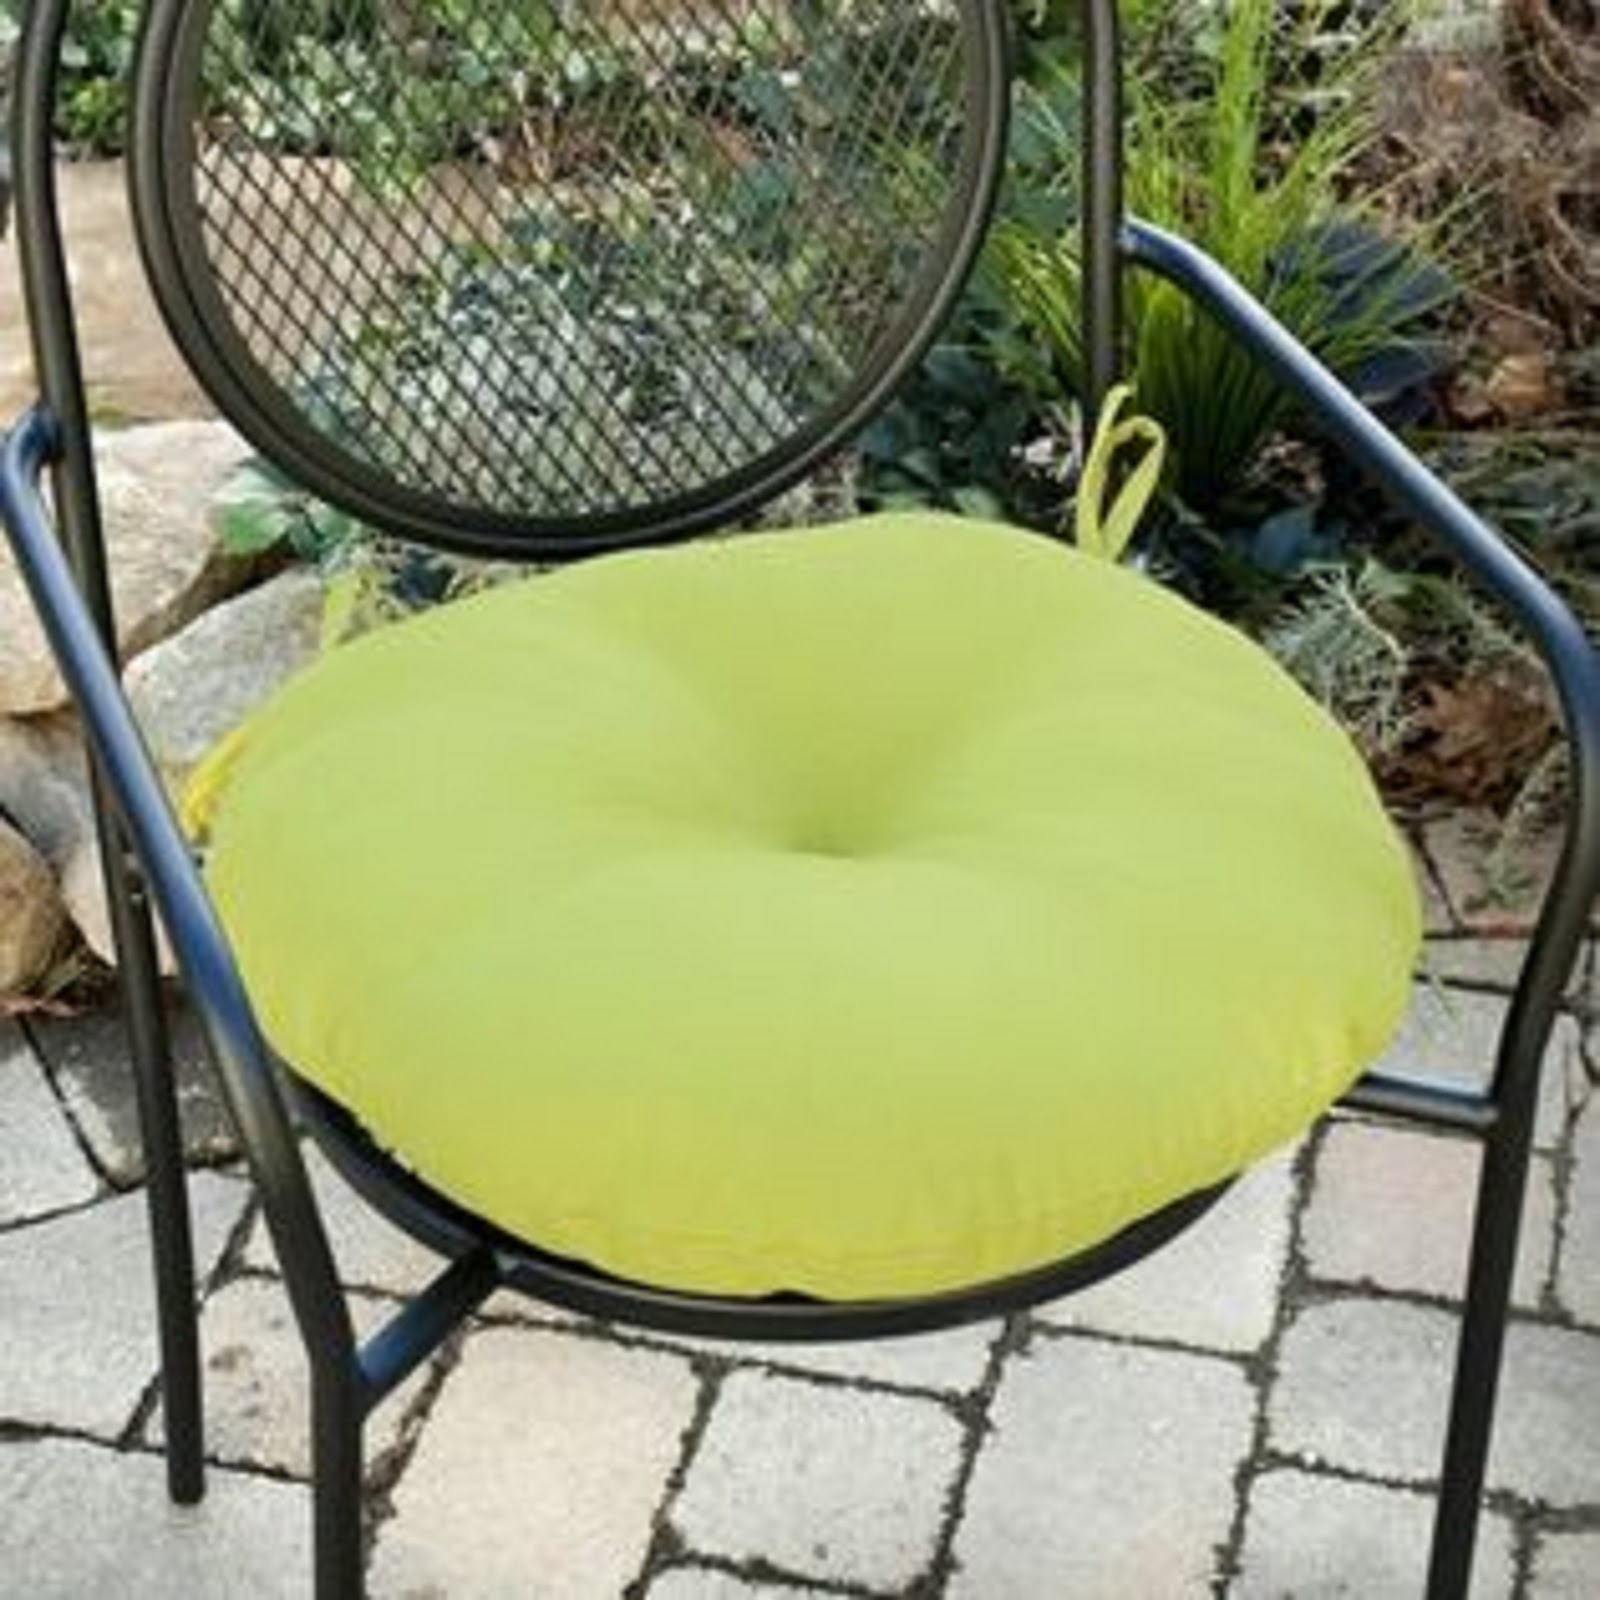 Greendale Home Fashions 18 in. Round Outdoor Bistro Chair ...